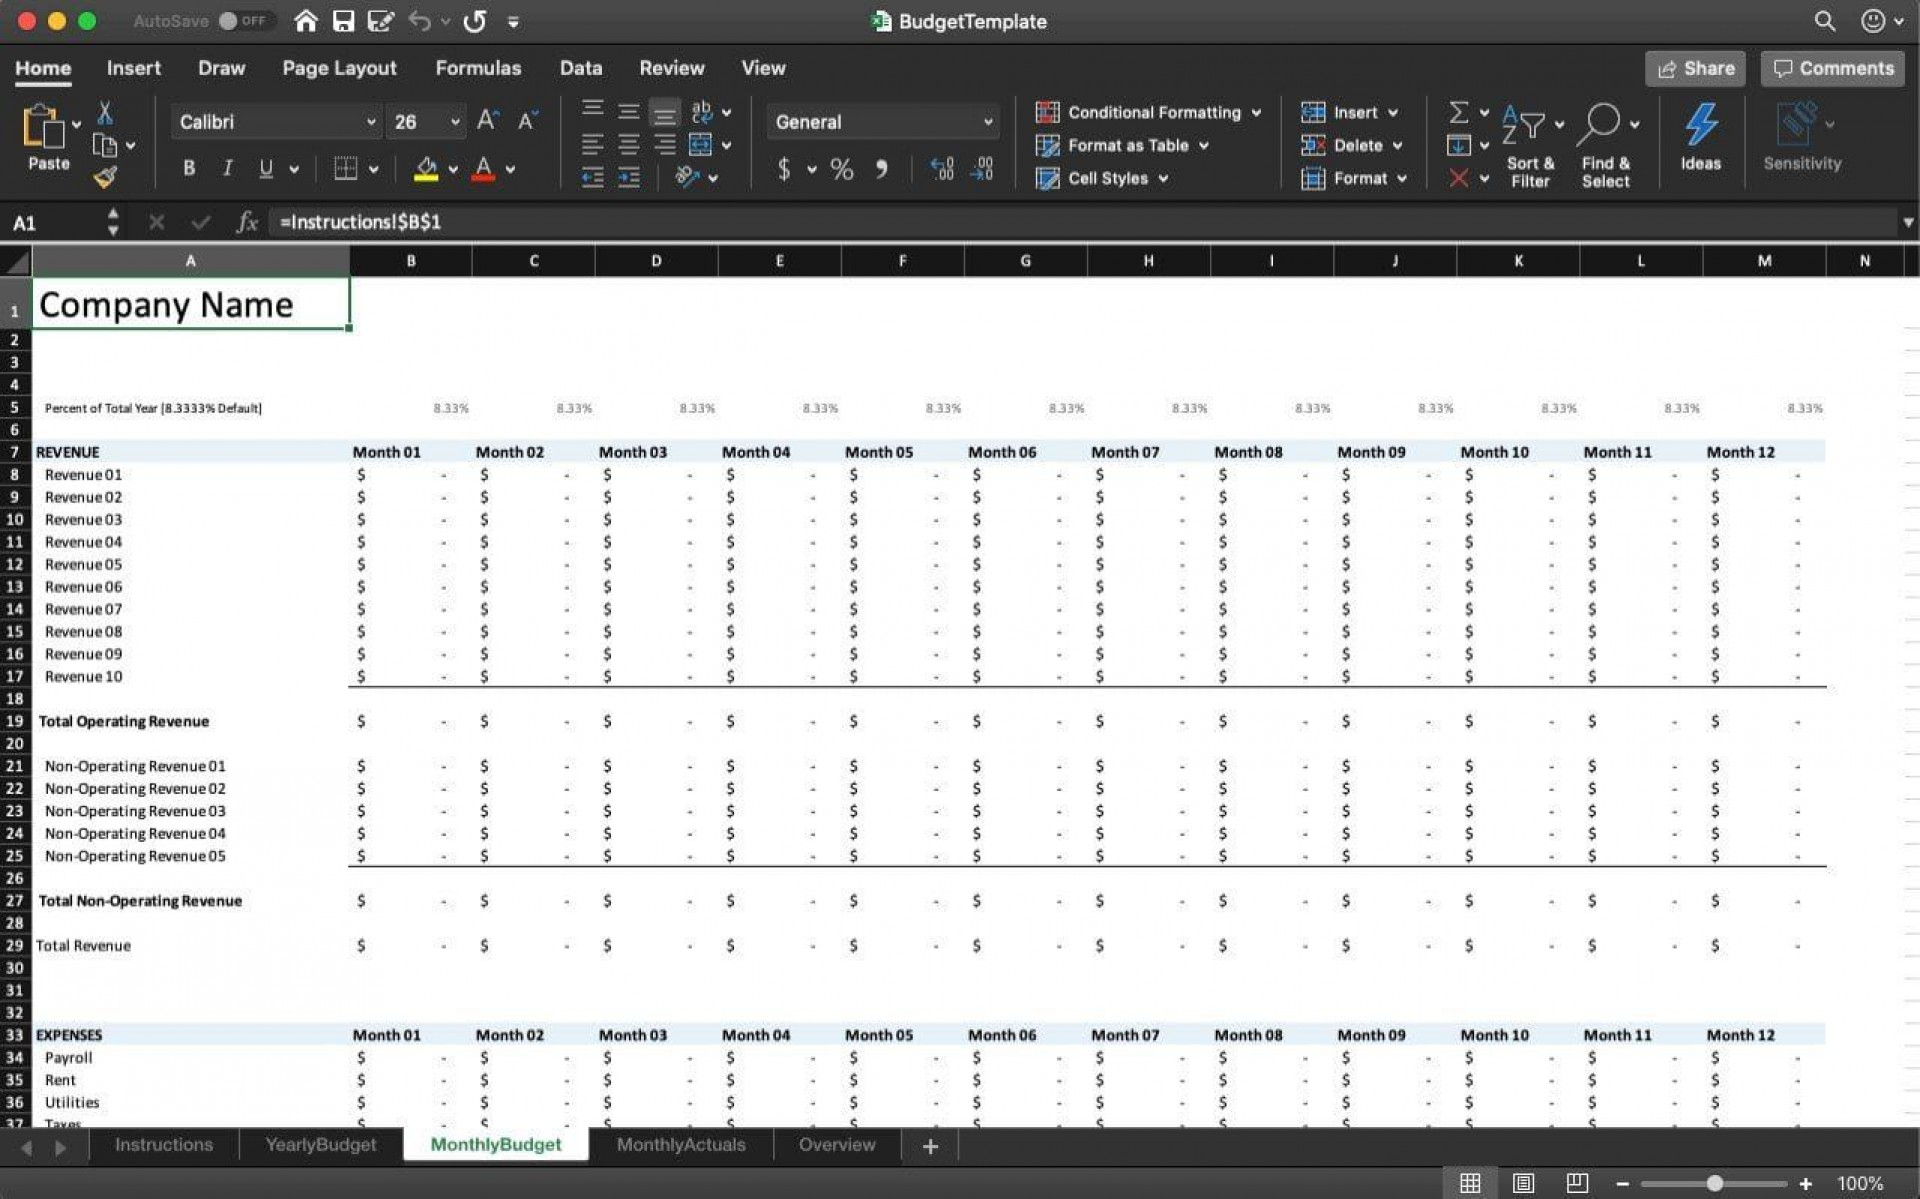 004 Top Free Microsoft Excel Personal Budget Template Design  Templates1920